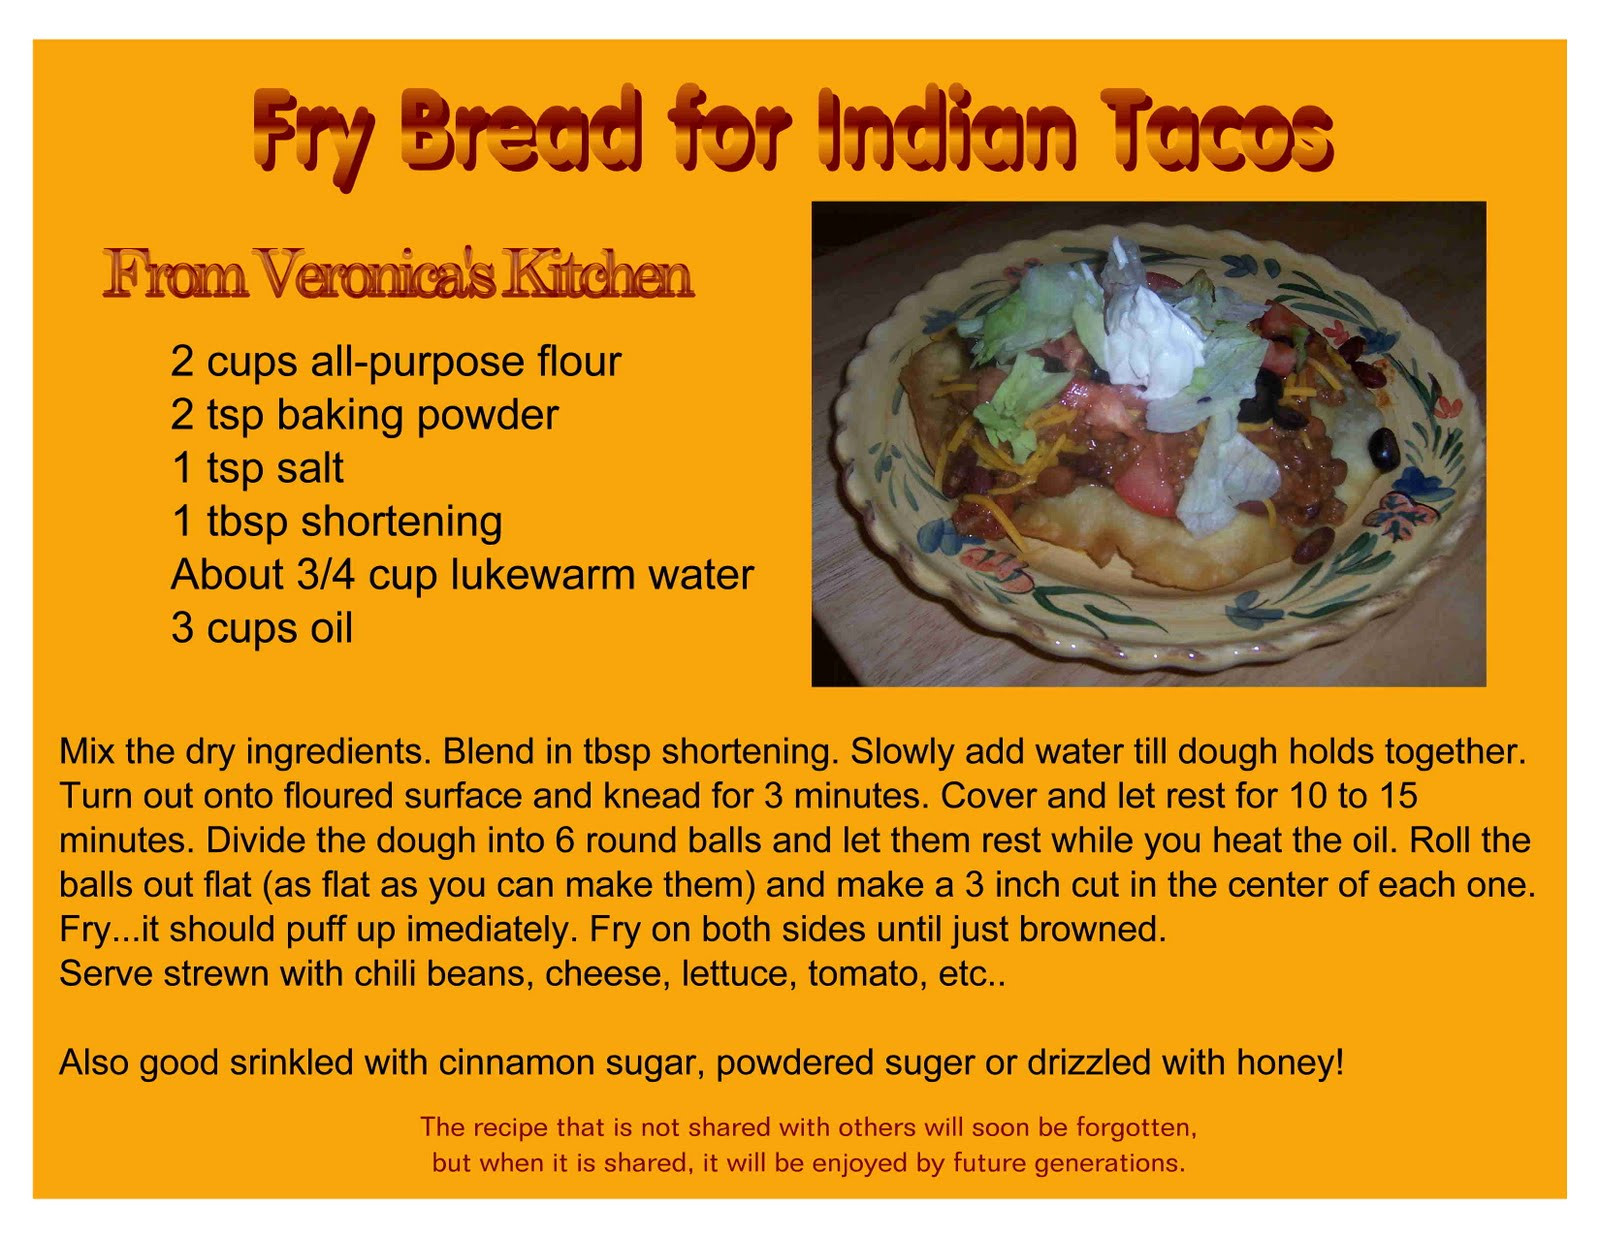 Indian Taco Fry Bread Recipe  from veronica s kitchen Fry Bread for Indian Tacos